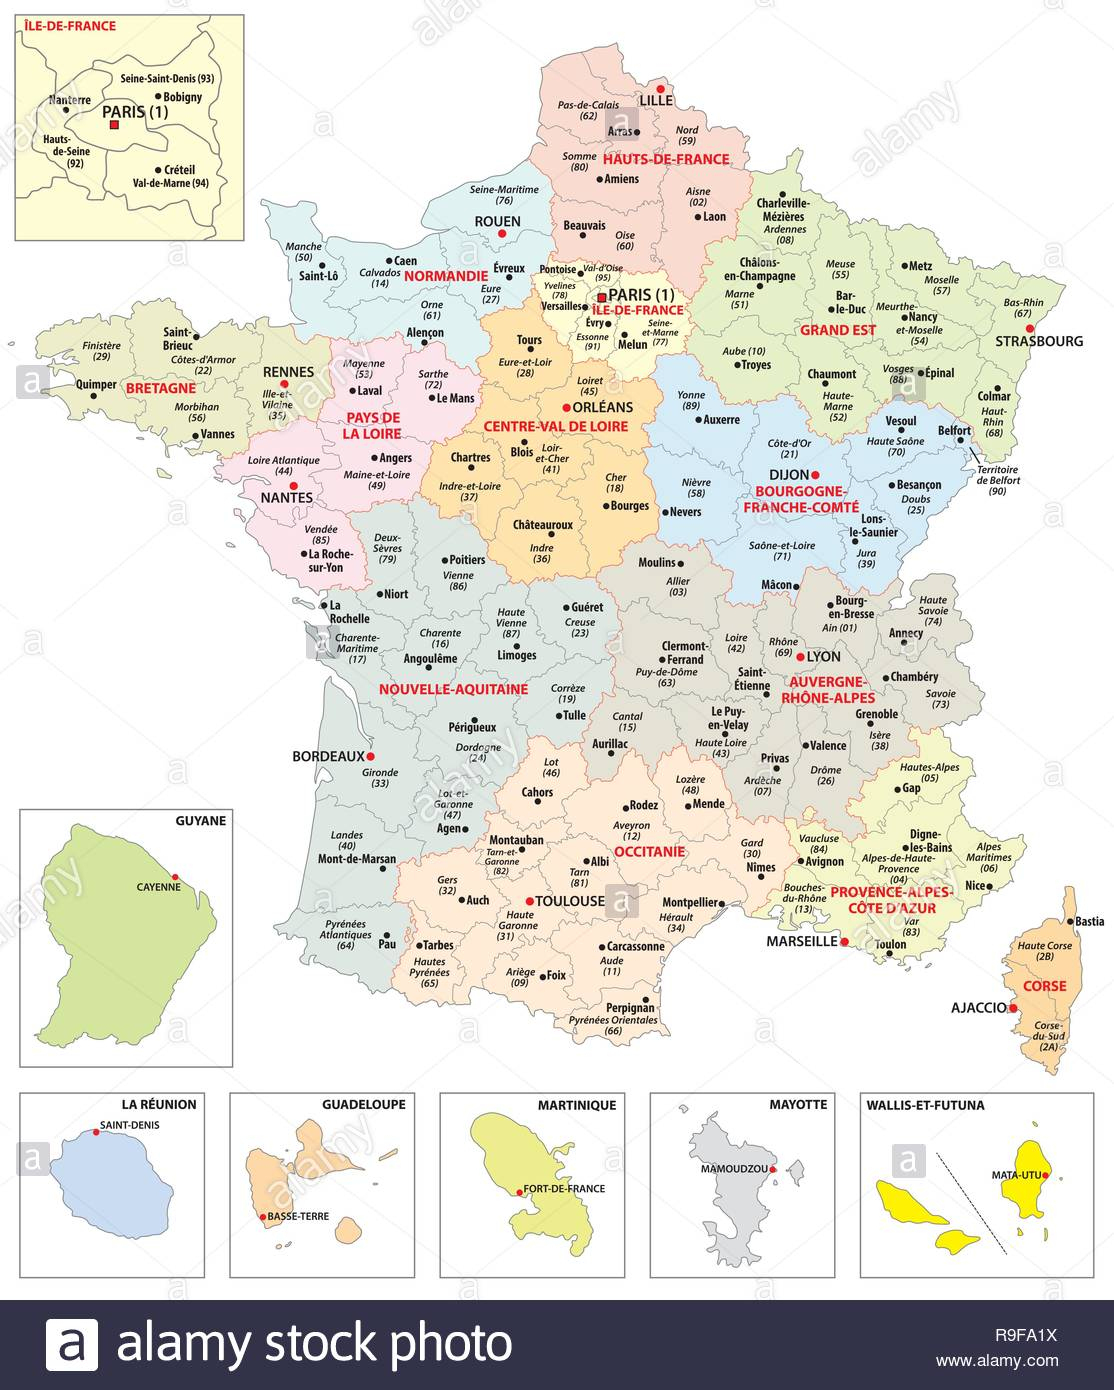 Administrative Map Of The 13 Regions Of France And Overseas encequiconcerne Les 13 Régions